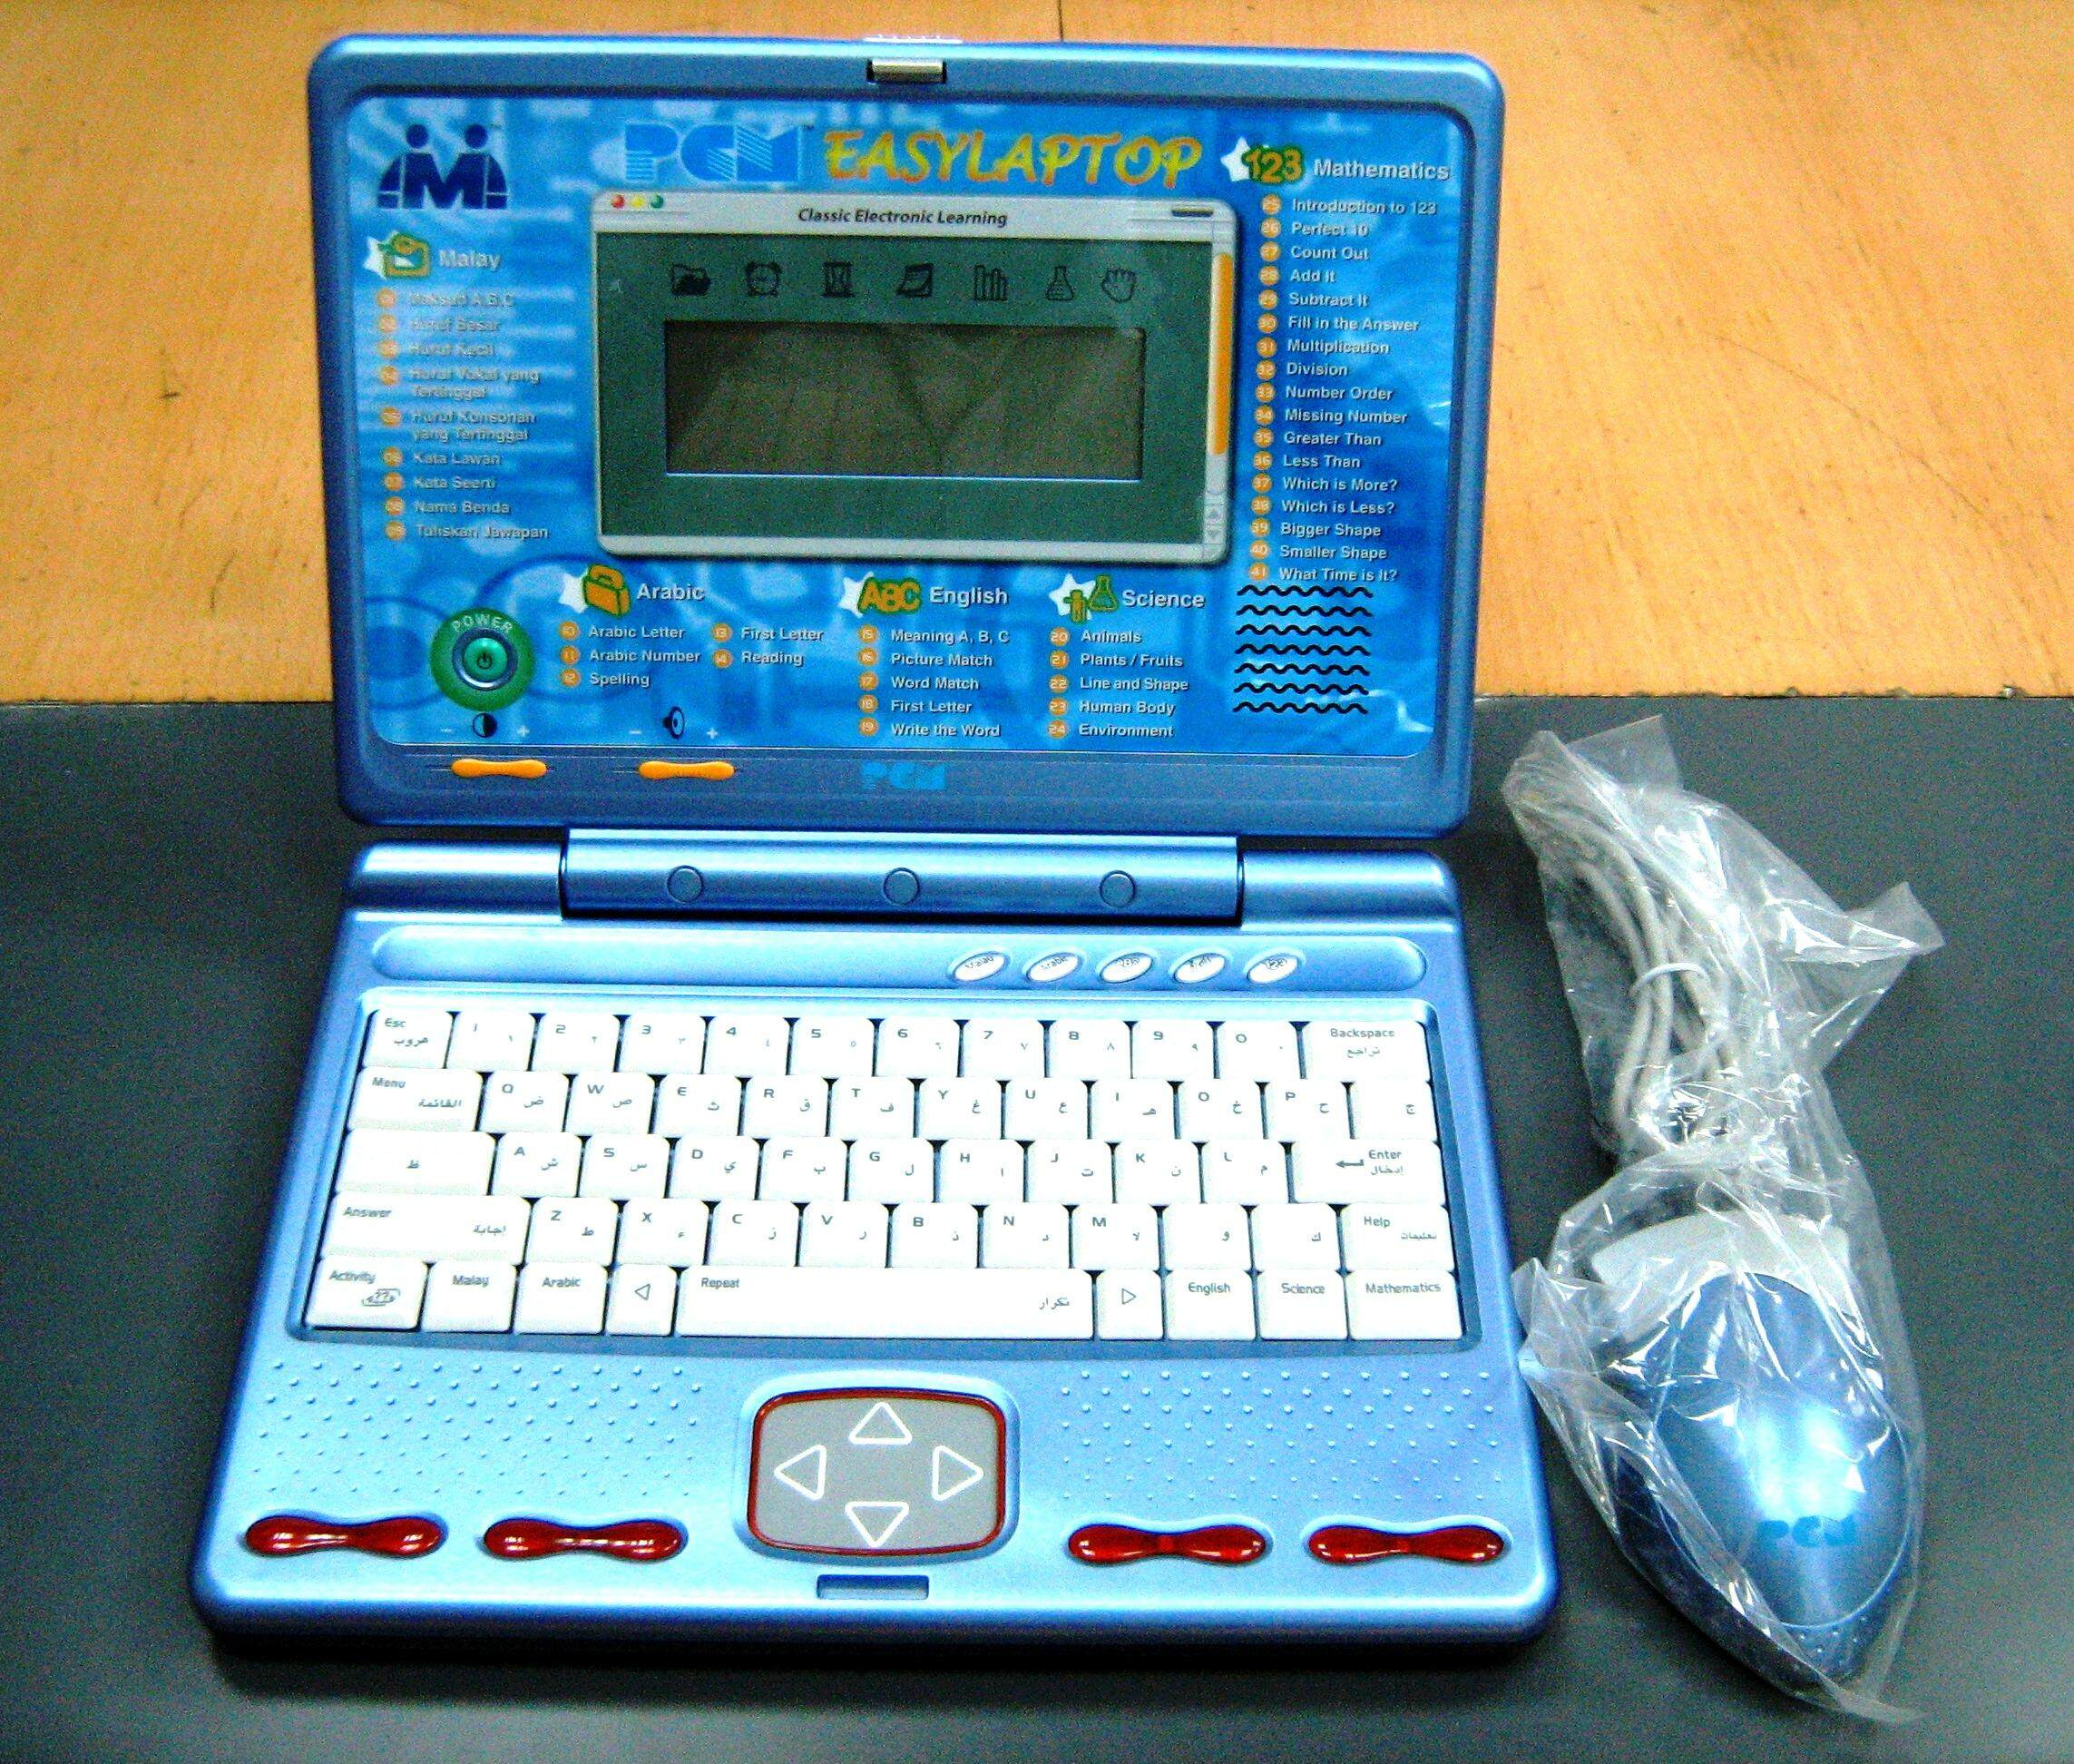 Pcm Winner 2020 Easy Laptop - Electronic Learning Toy By Cy 2u.